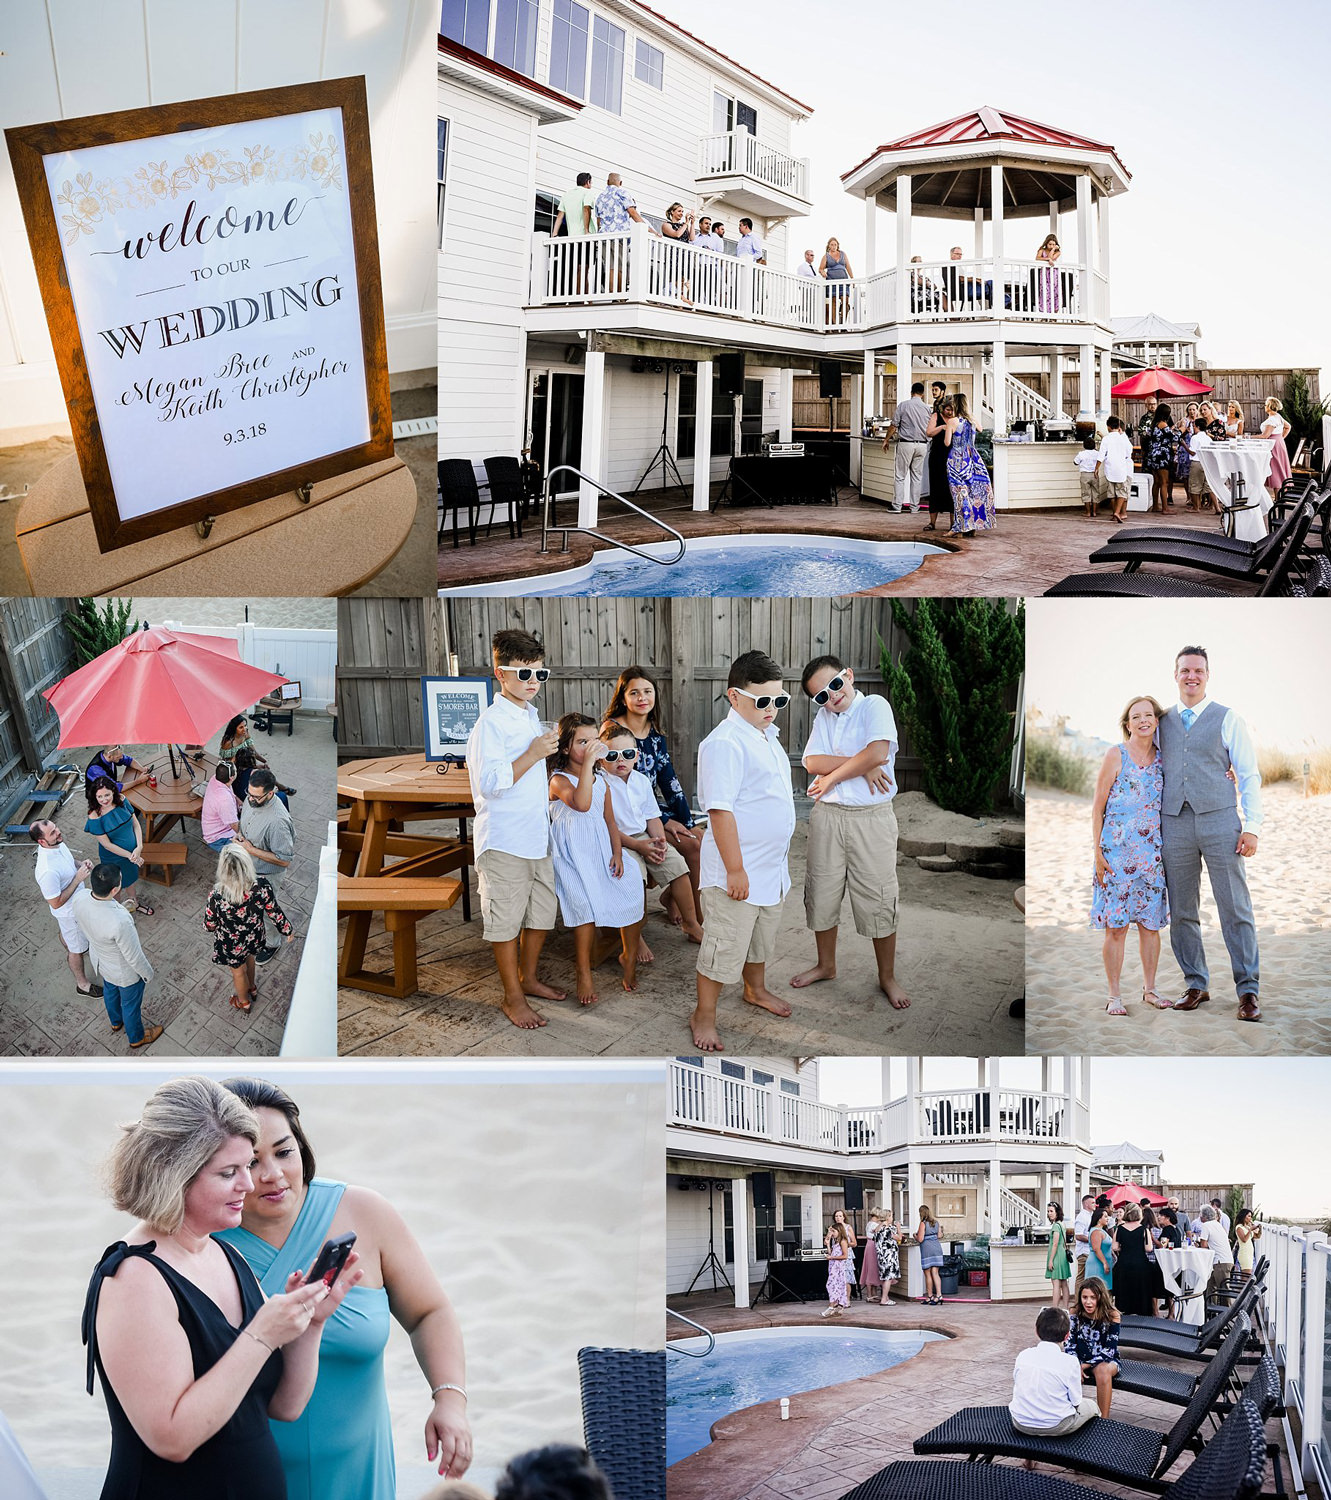 sandbridge-beach-cottage-wedding-pictures-virginia-beach-norfolk-wedding-photographer-melissa-bliss-photography.jpg